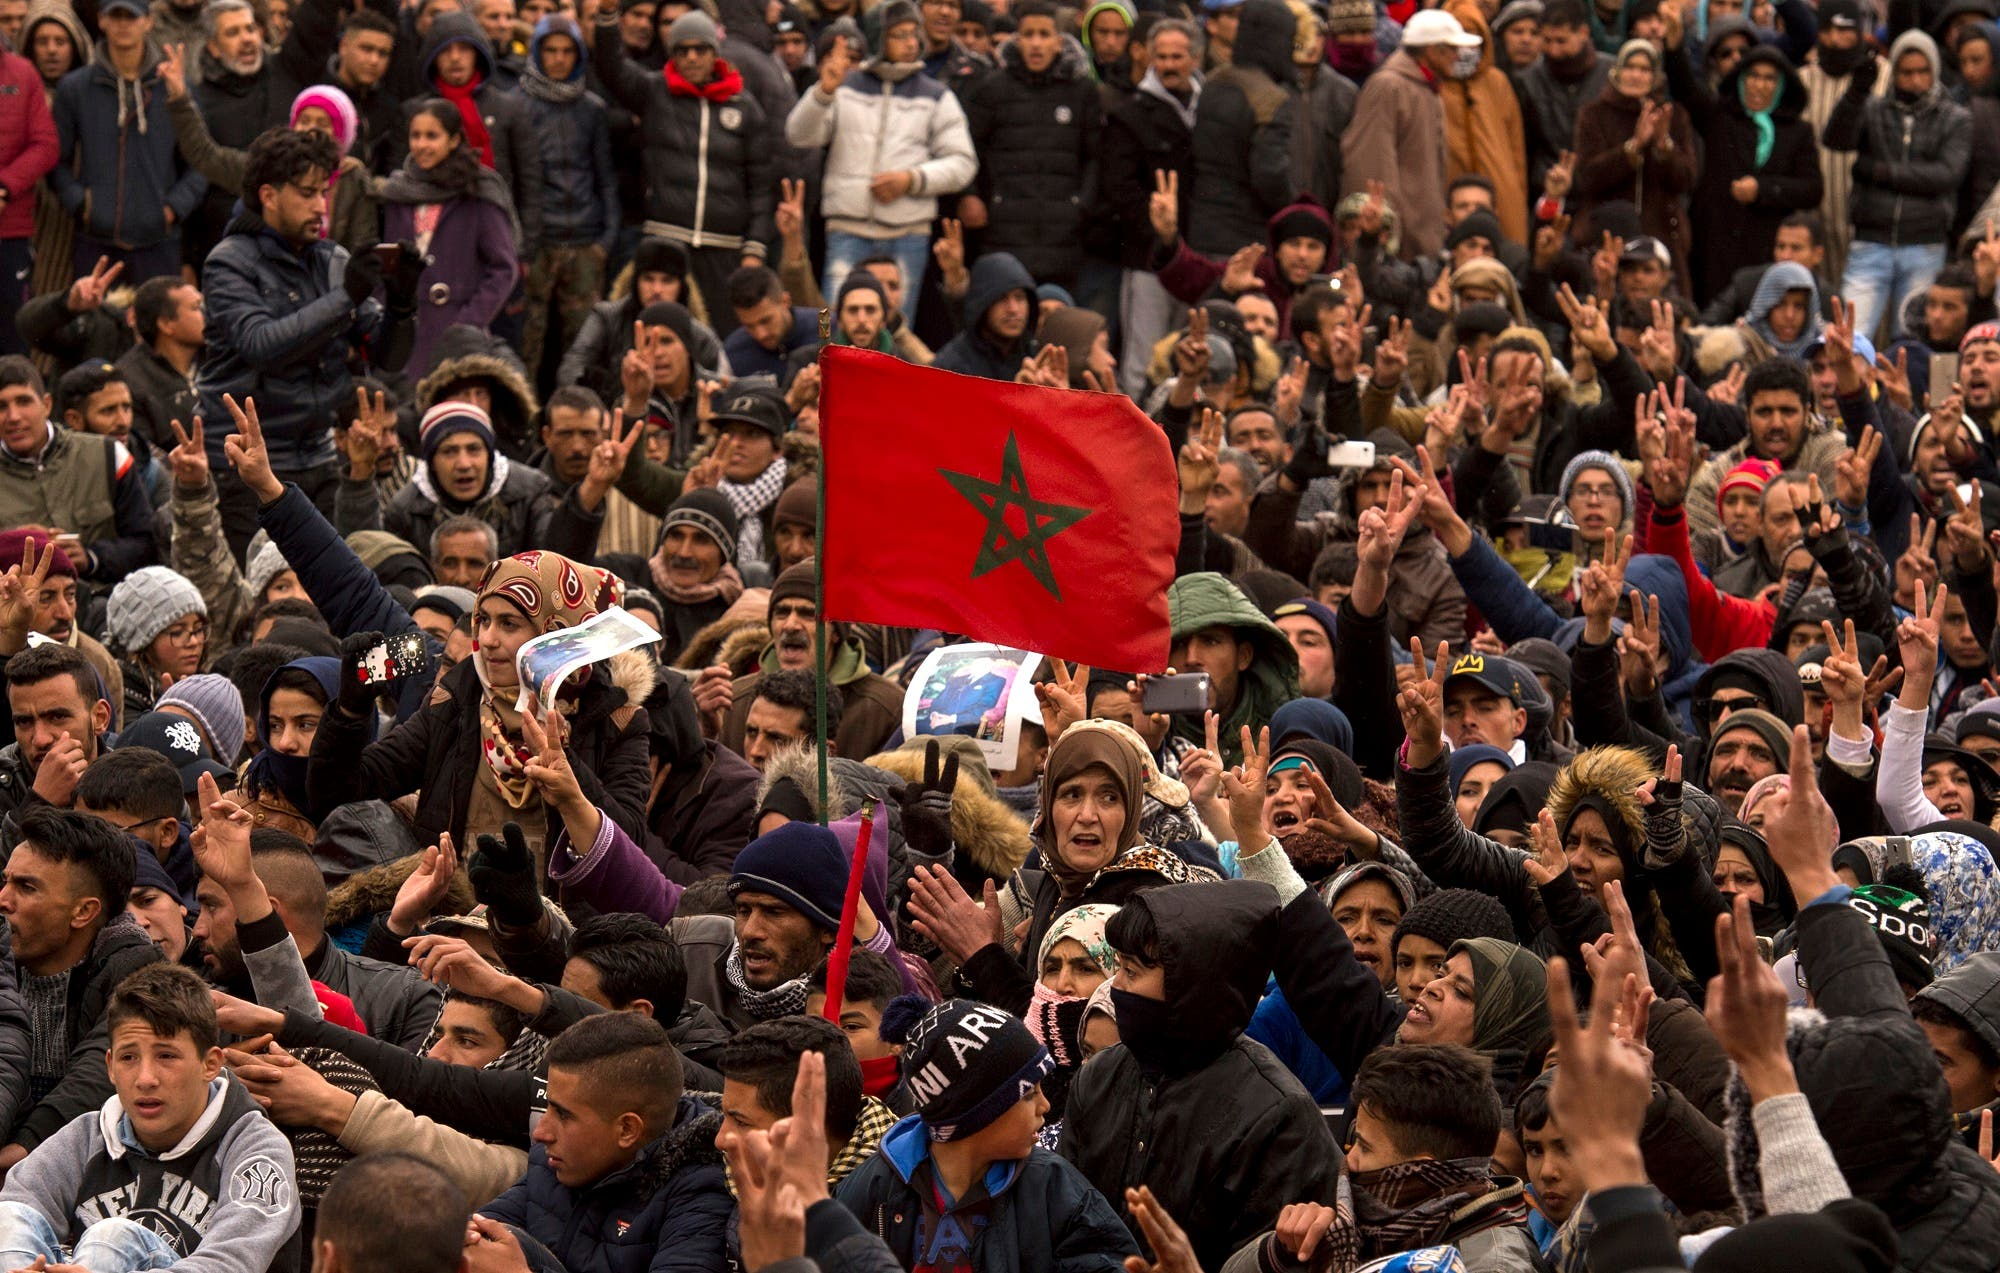 Moroccans shout slogans and wave their national flag as they participate in a demonstration after the funeral on December 27, 2017. (AFP)